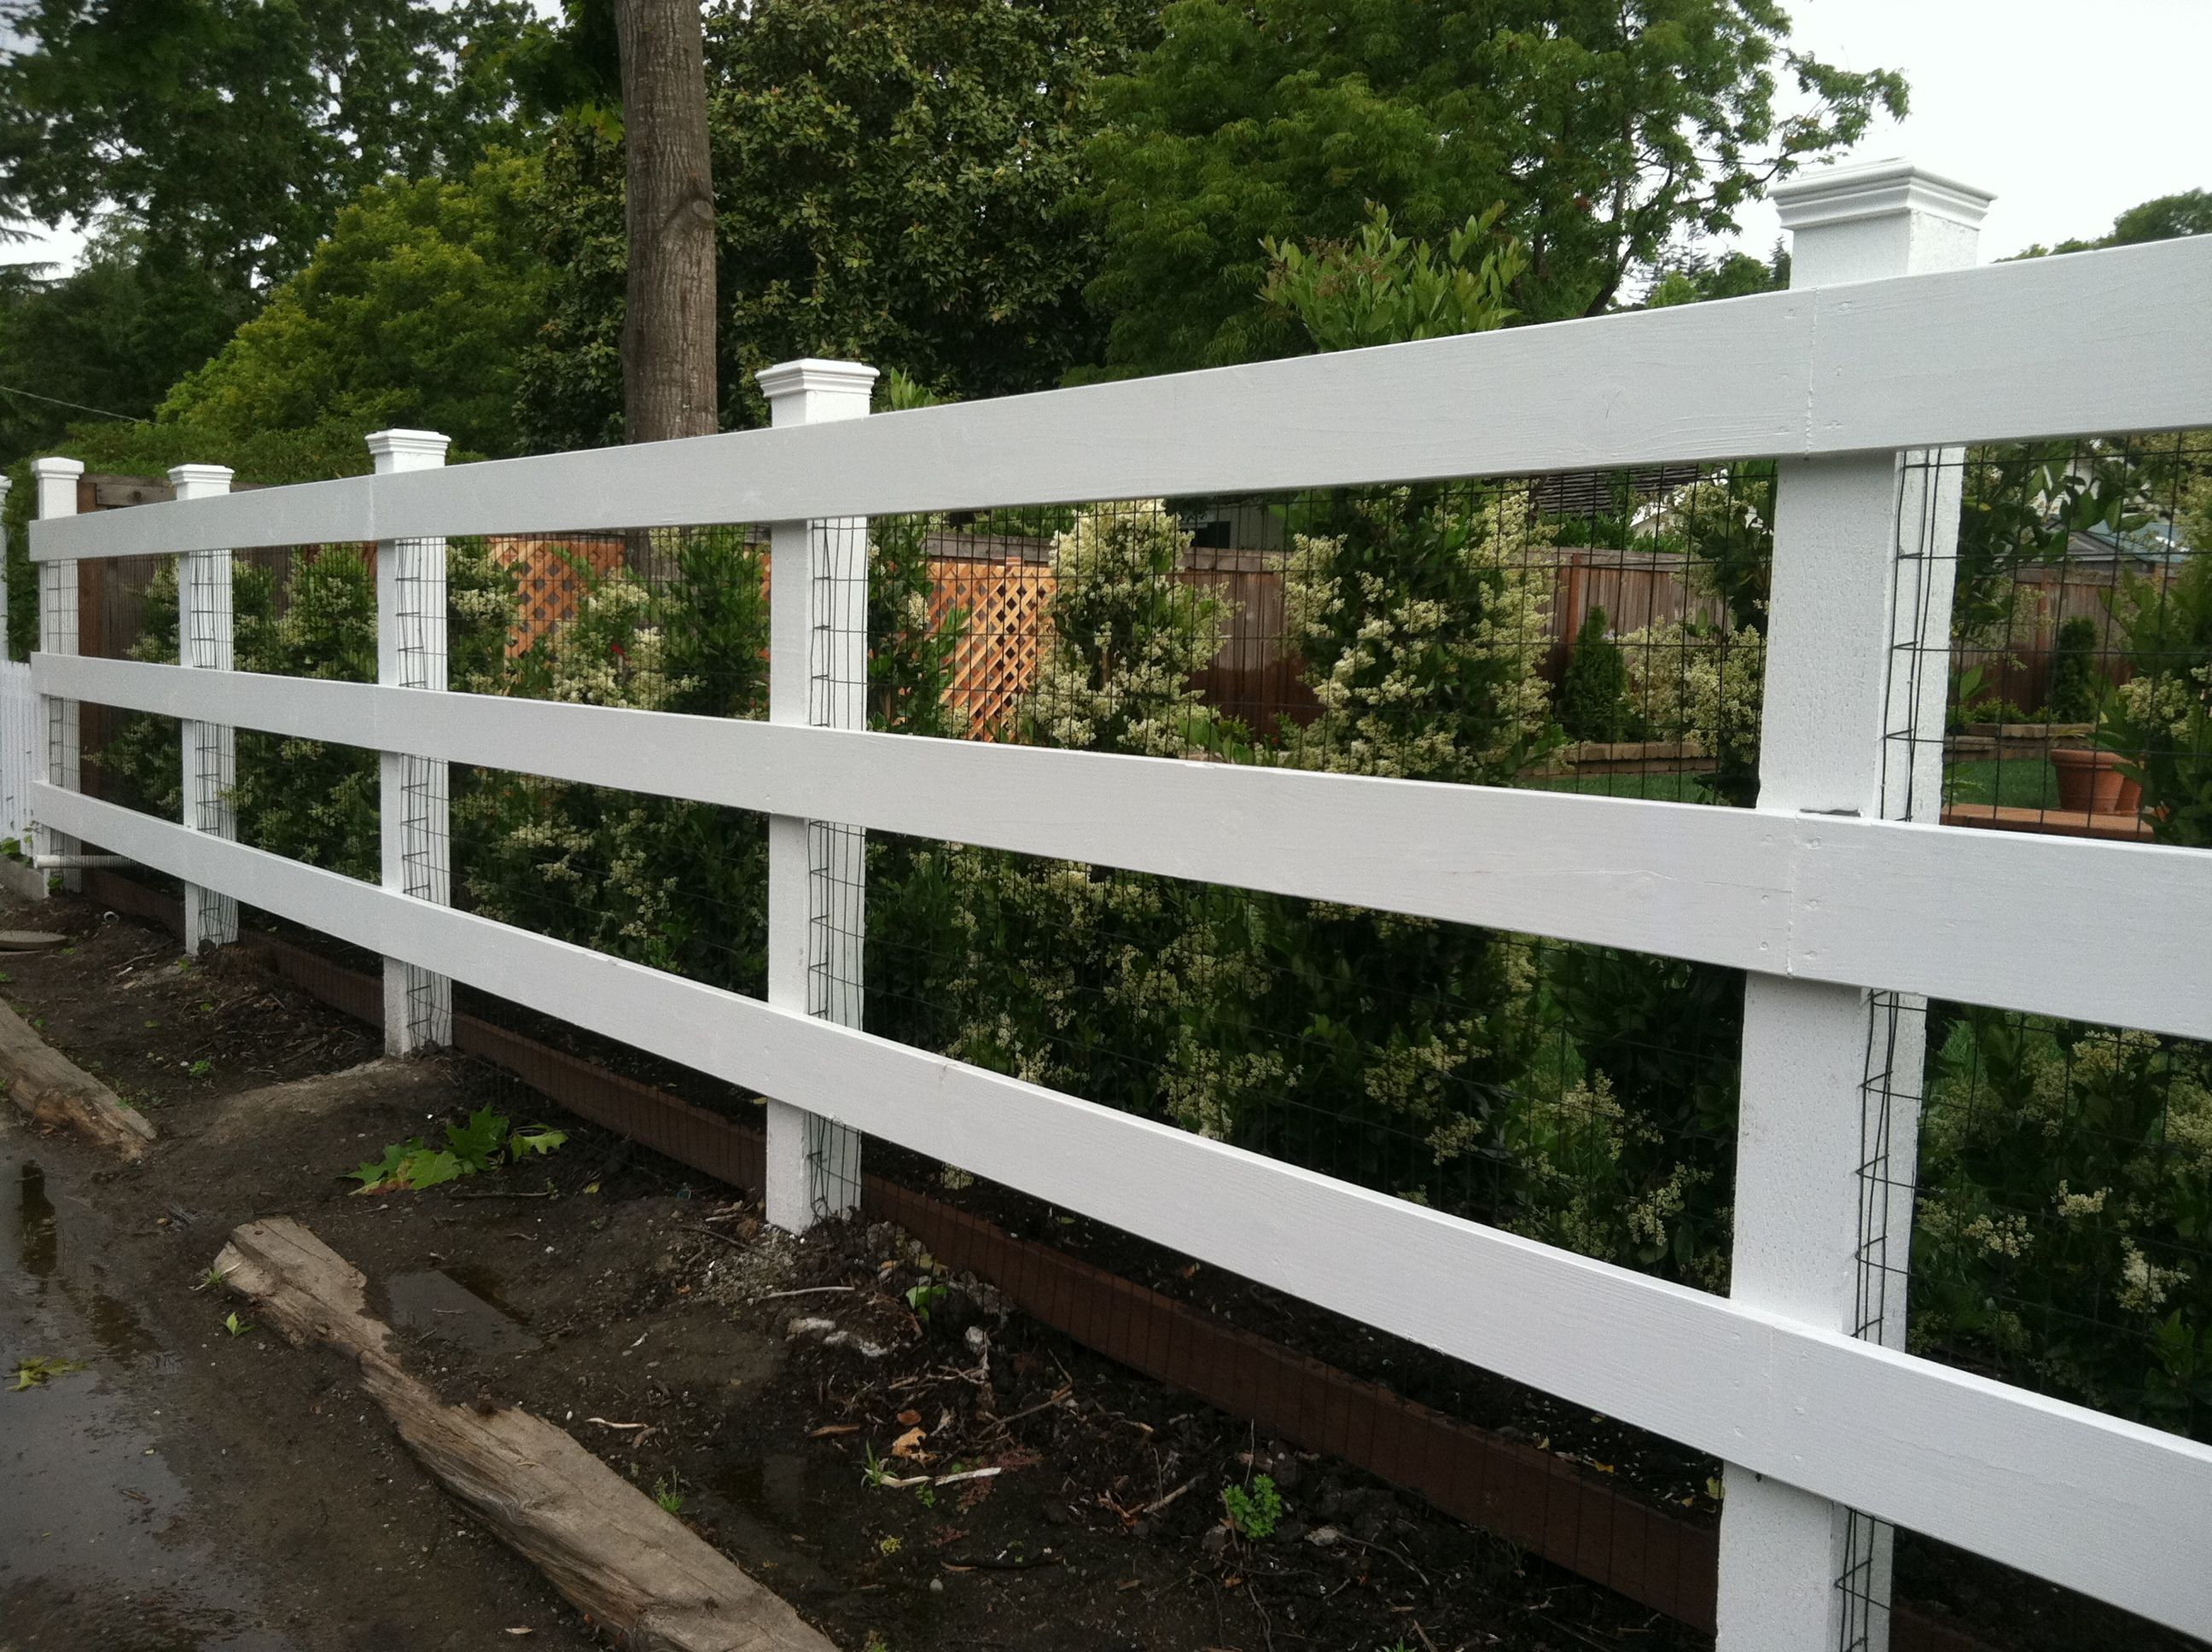 Awesome Painted White, Redwood Ranch Style Fence With Deer Fencing Nailed To The  Inside Of The